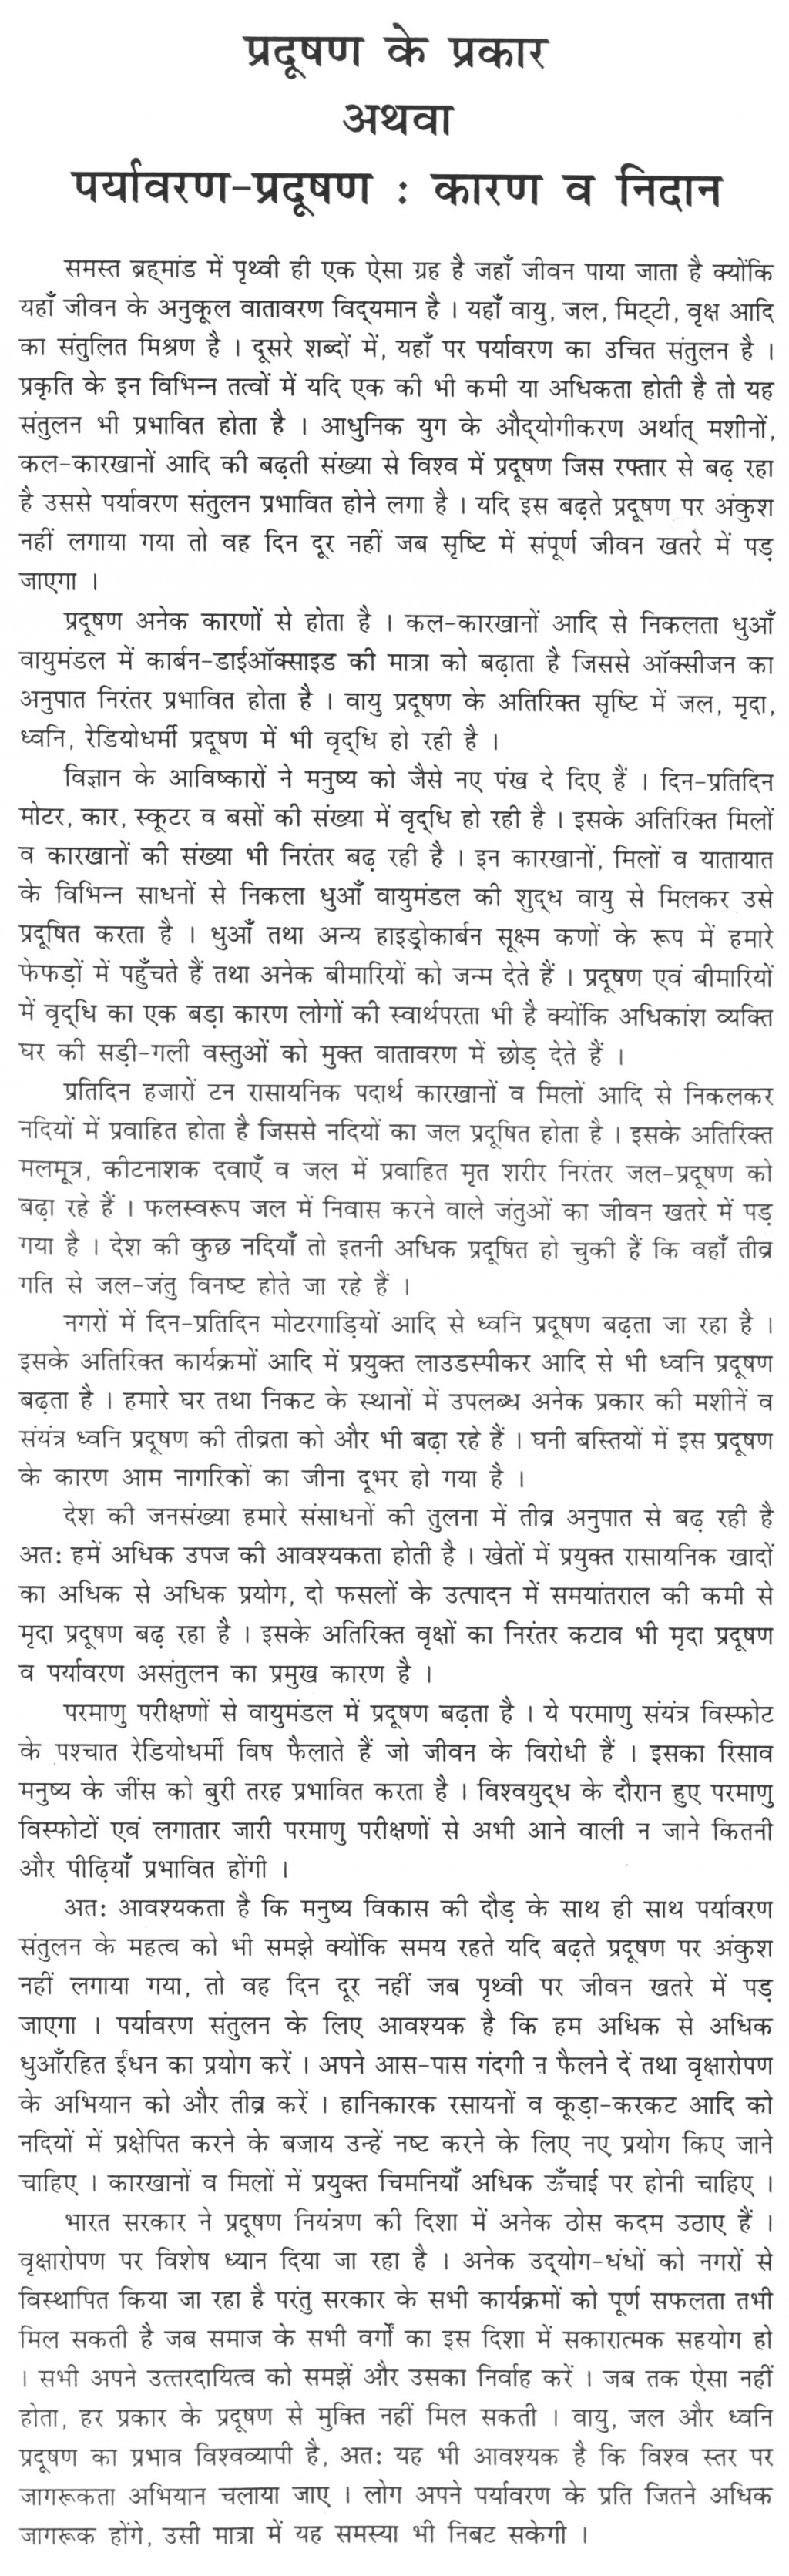 014 Good Habits Essay In Hindi Exceptional Habit Wikipedia Eating Large